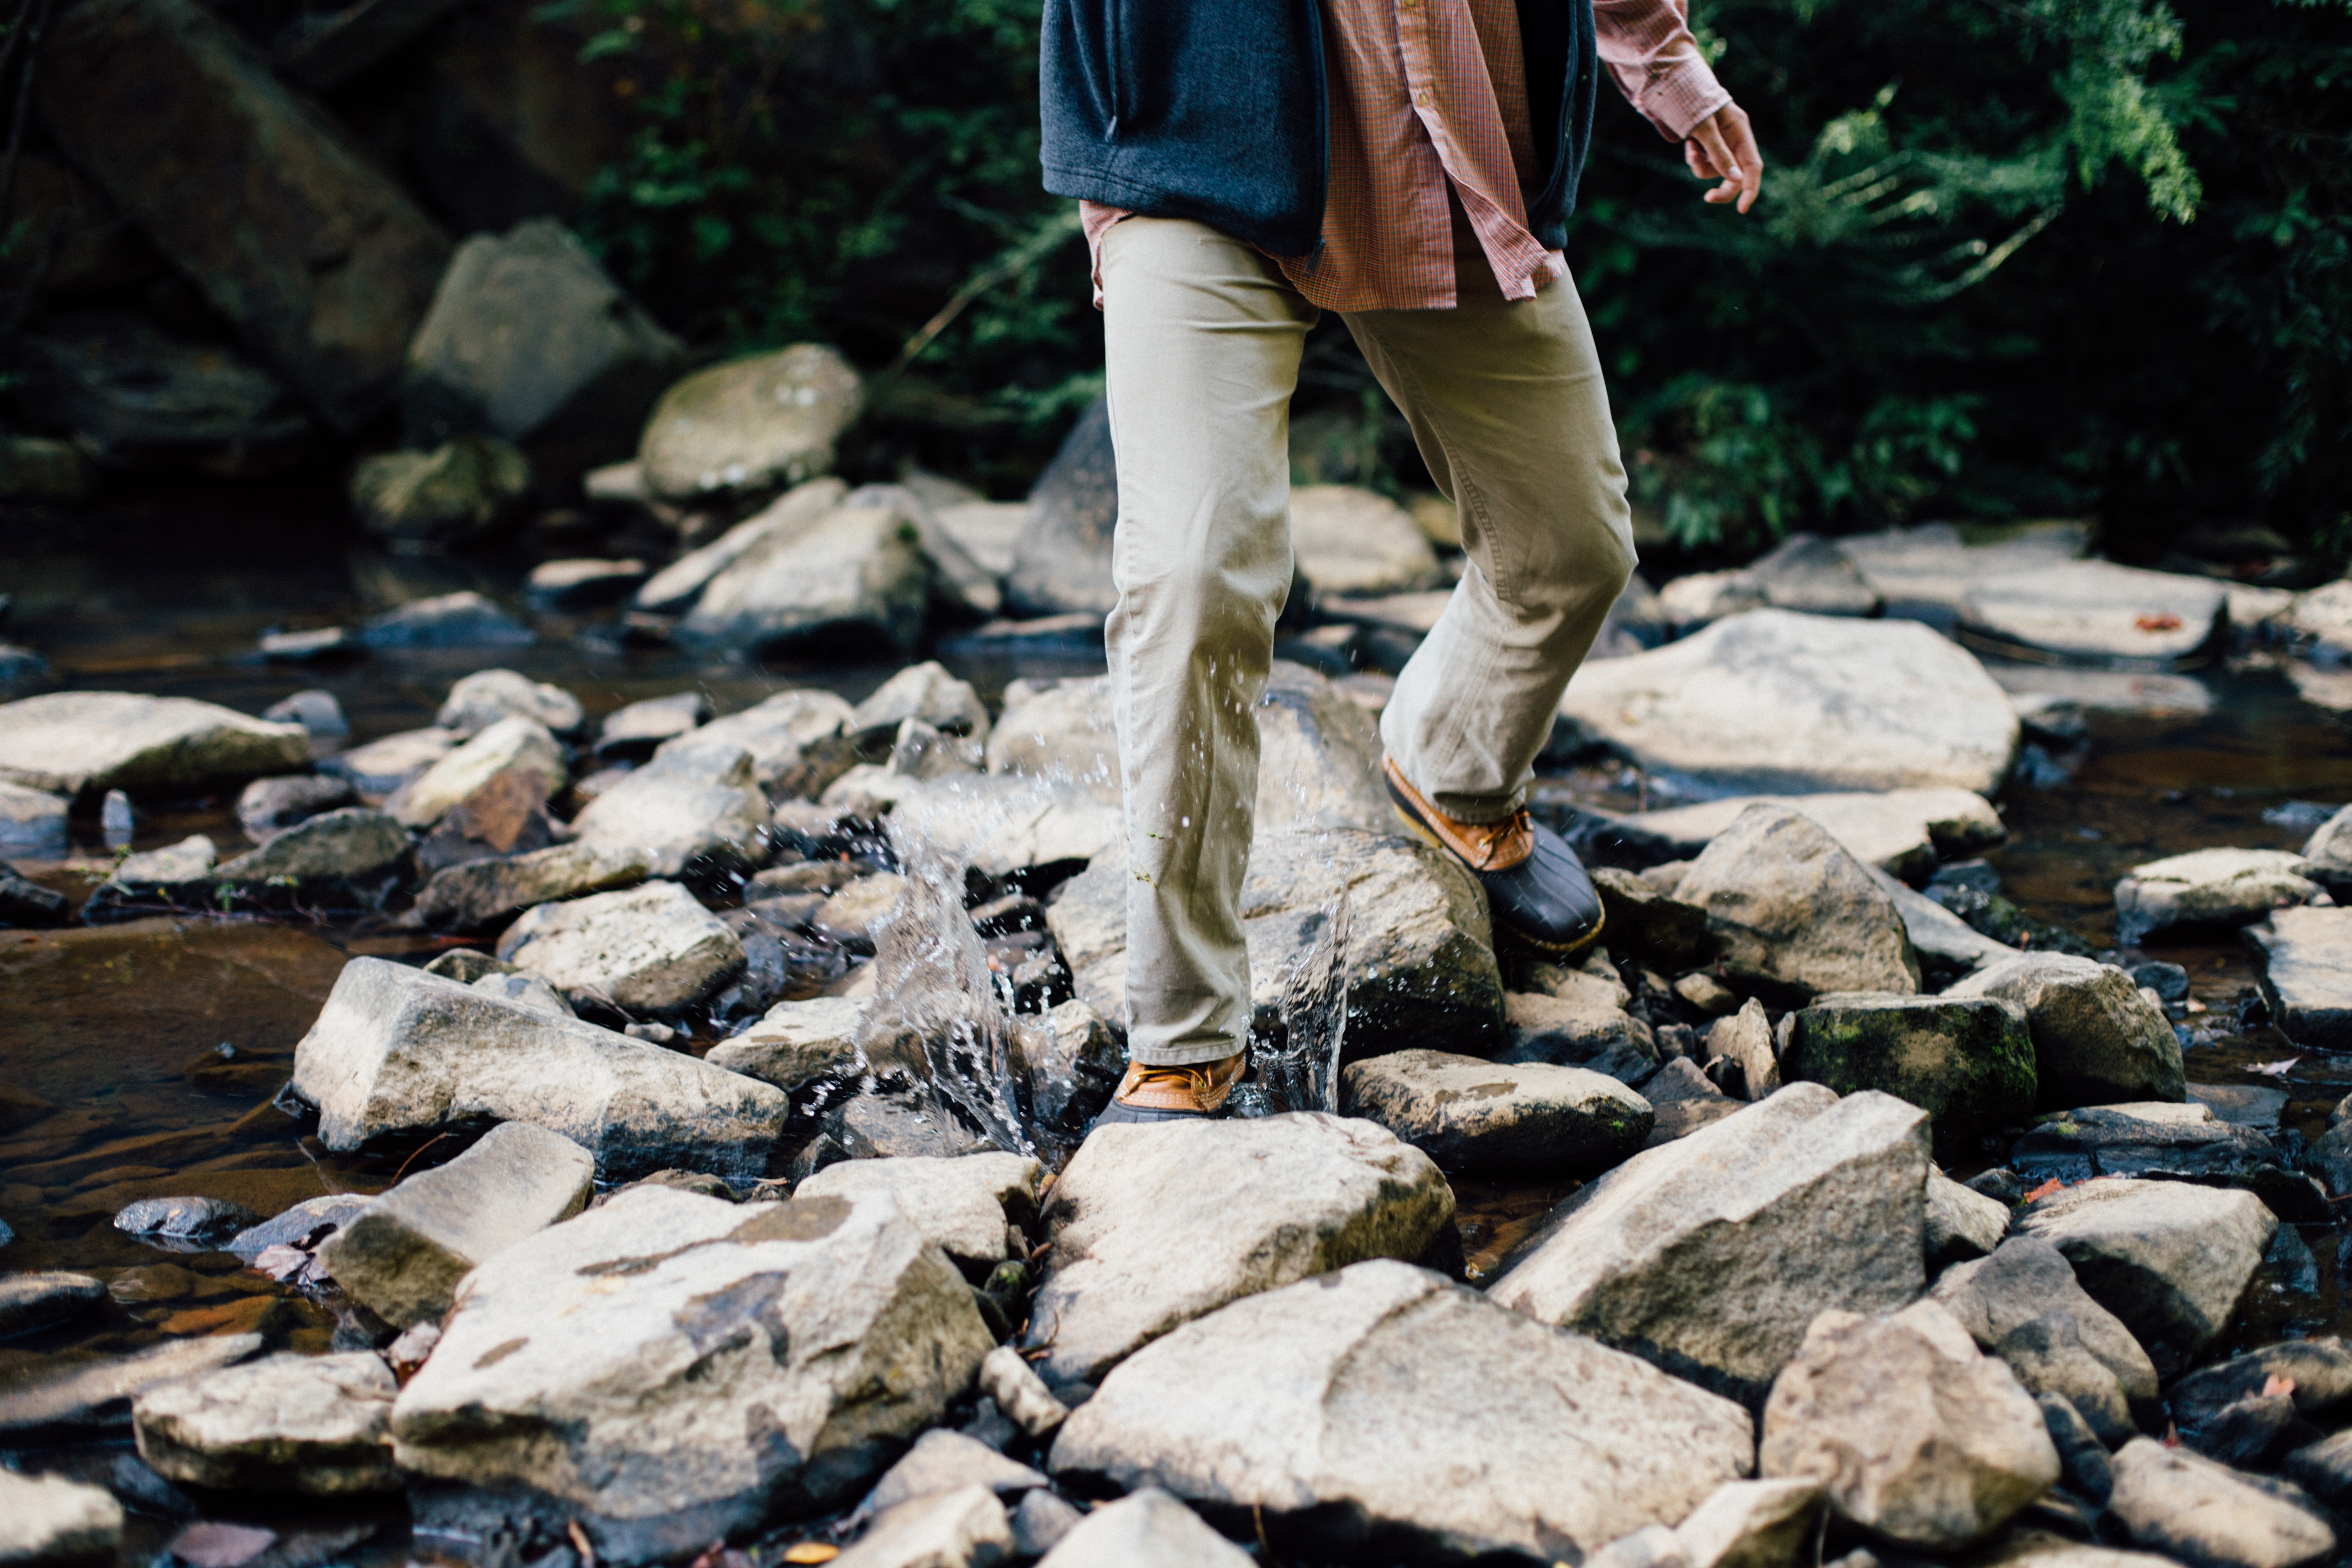 A man splashing across a stream in duck boots and a vest